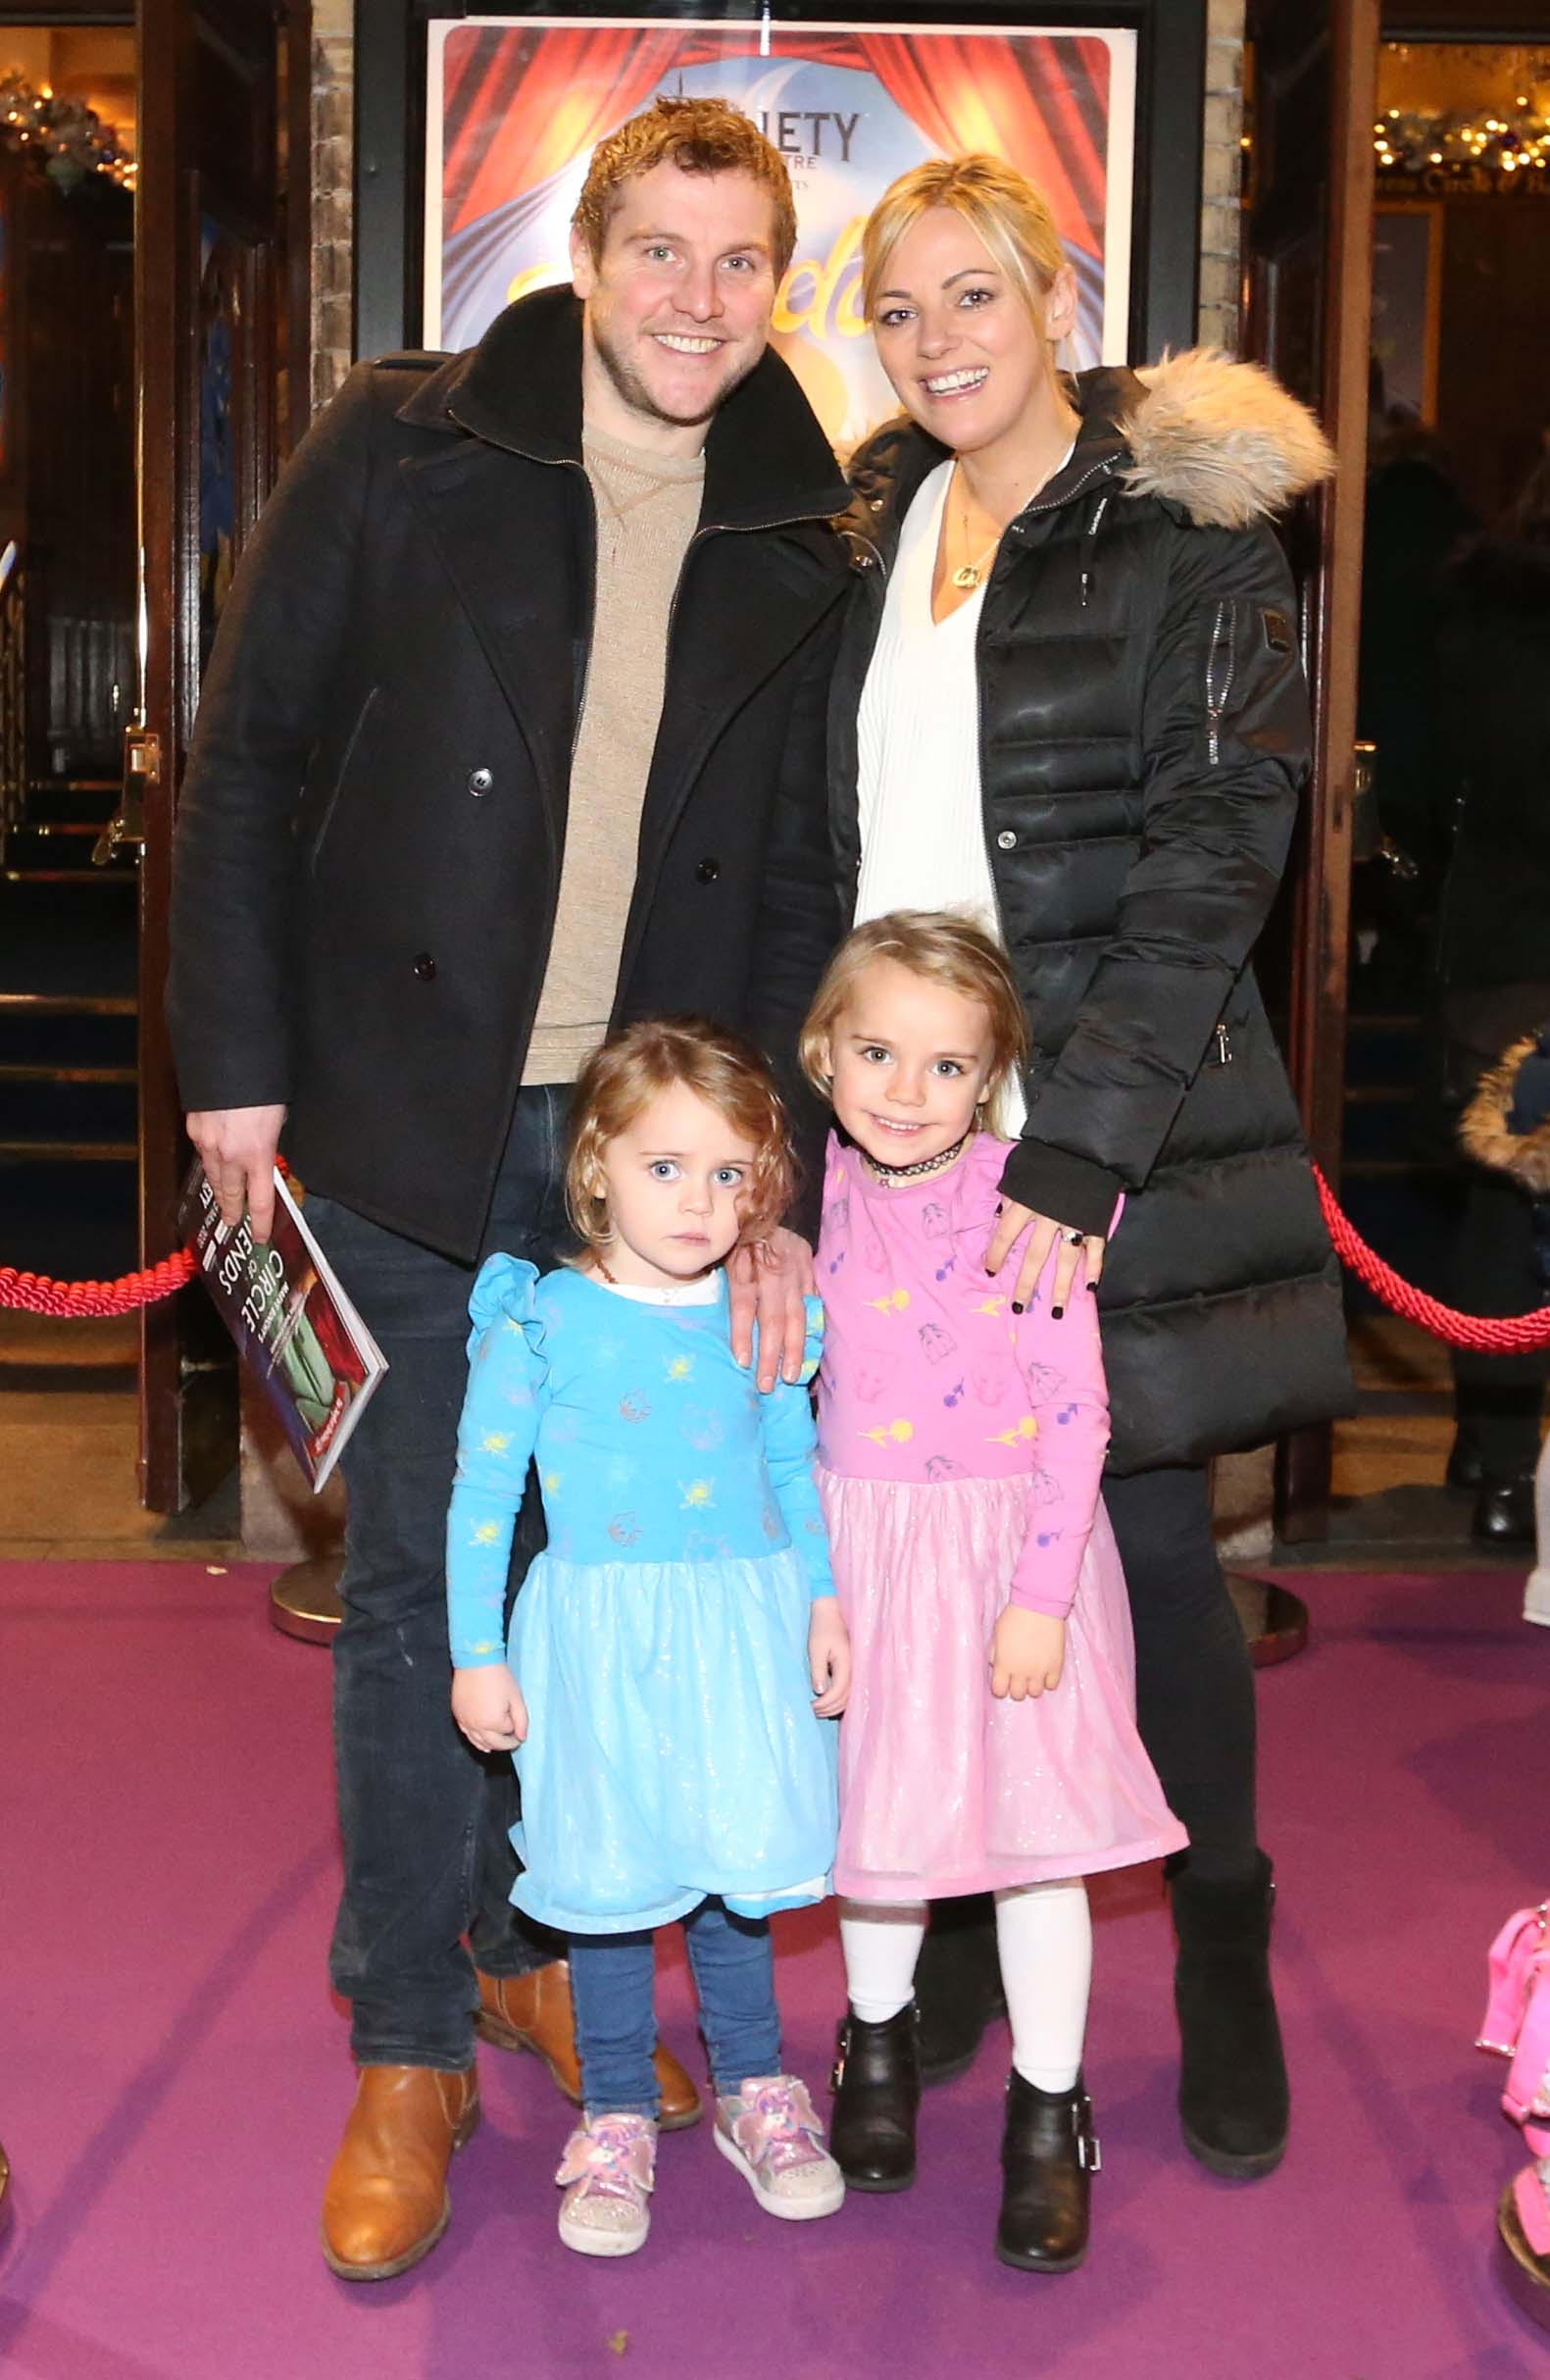 Pictured are (LtoR) Kim Driscoll and Peter Cunningham with their daughters Beth and Katie at the official opening of the Gaiety Theatre Christmas Panto, Aladdin. Aladdin opens at the Gaiety Theatre Sunday 24th November. Photo: Sasko Lazarov/Photocall Ireland